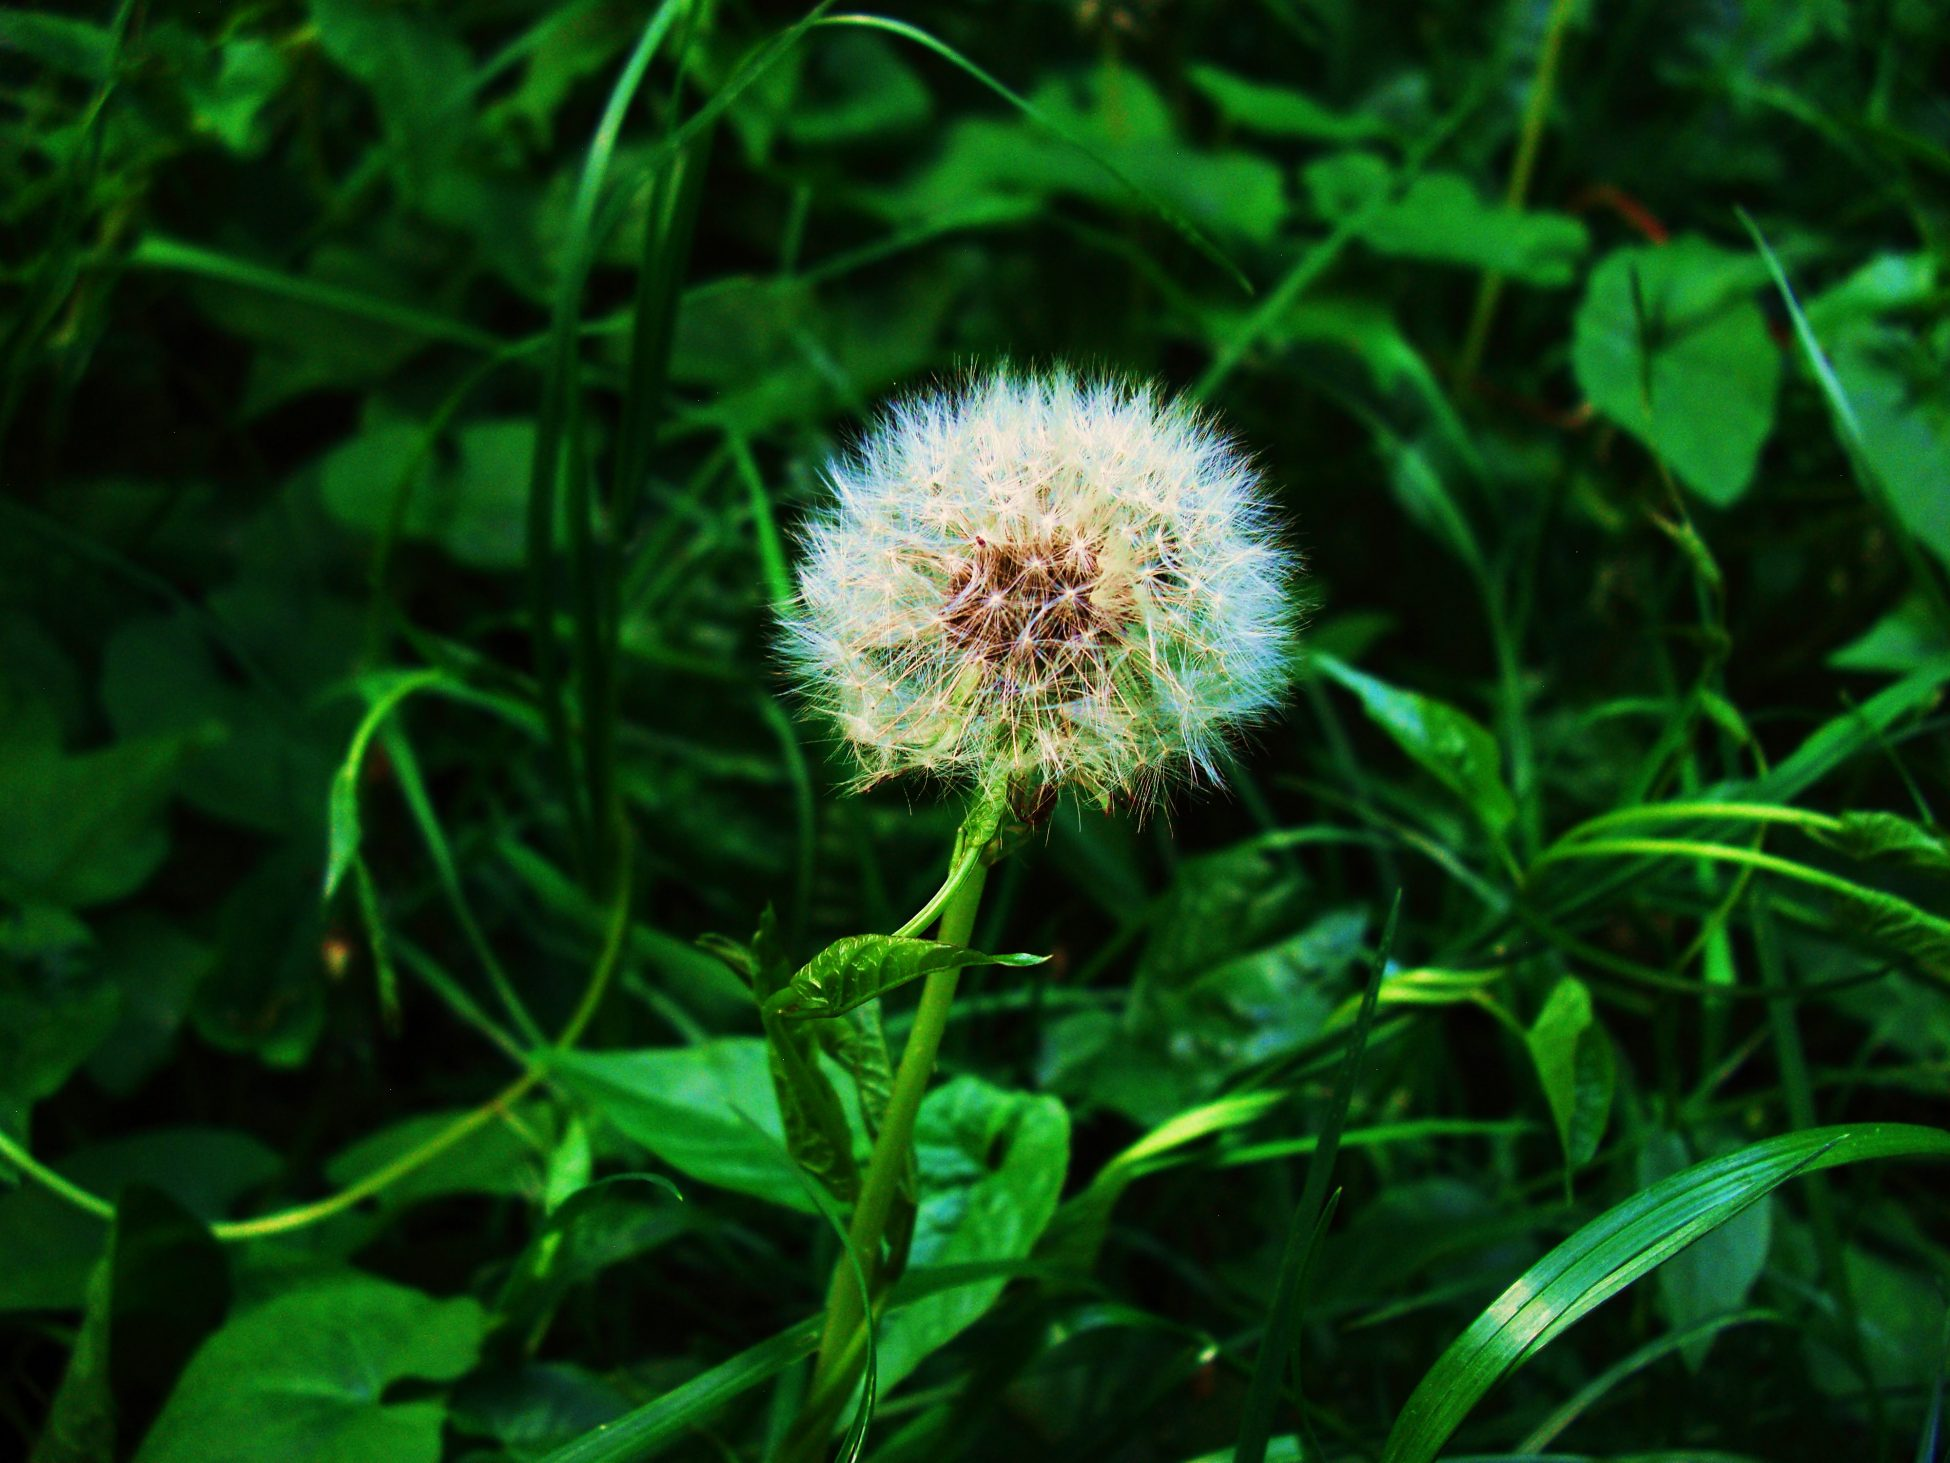 Photo of a dandelion seed head with green leaves in the background